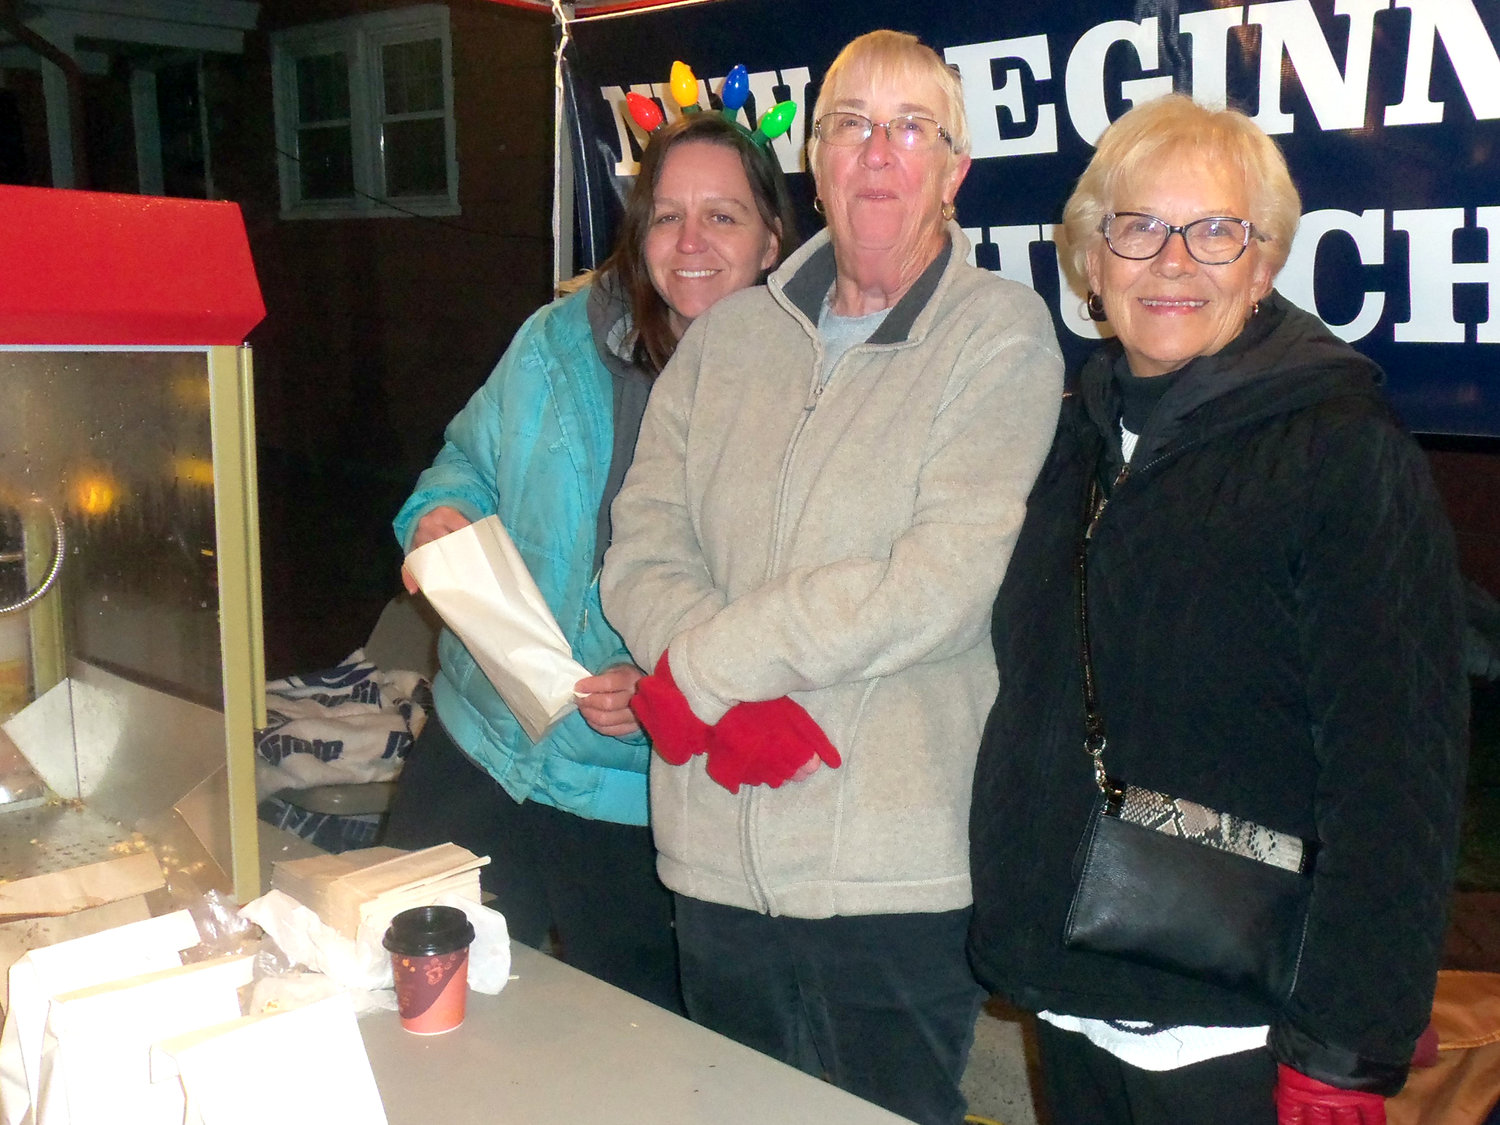 New Beginnings Church of Middletown warmed the crowd at Saturday's borough tree-lighting ceremony with free popcorn. Seen Nov. 30 from left are volunteers Liz Hicks, Pat Sprecher and Becky Smith.